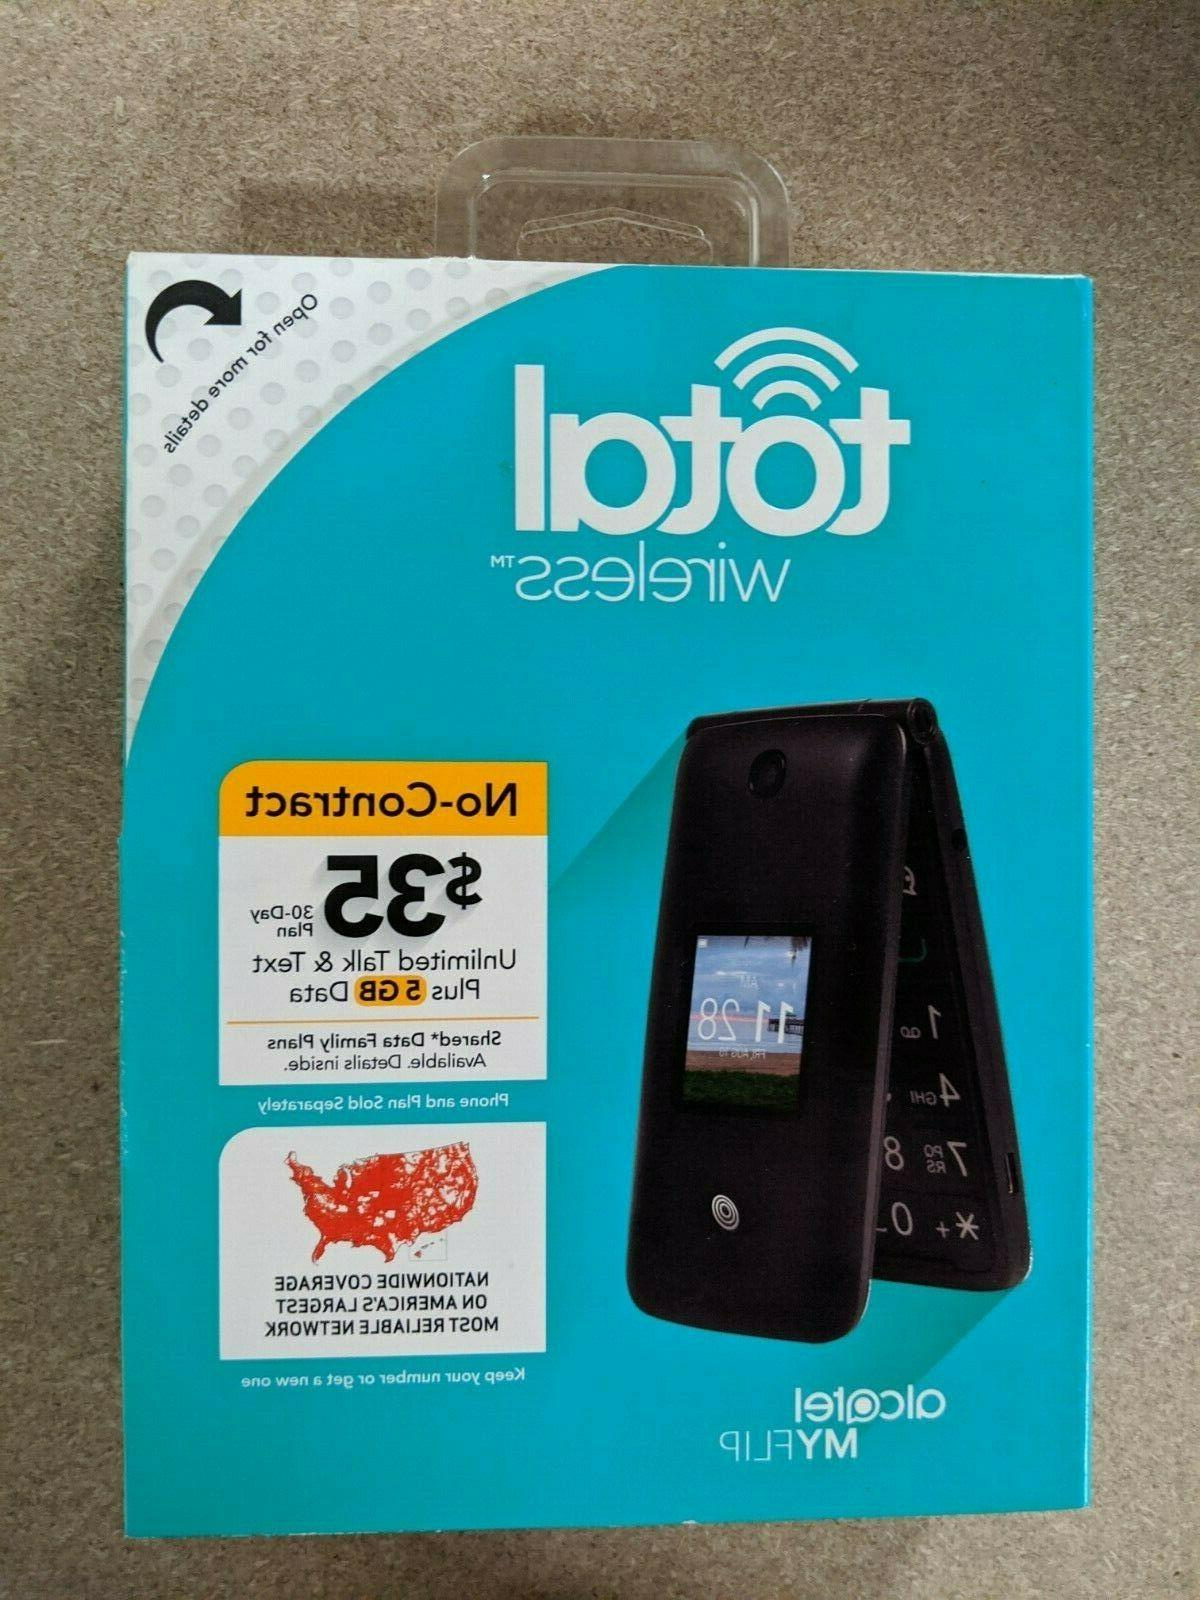 tracfone a405 flip prepaid cell phone free